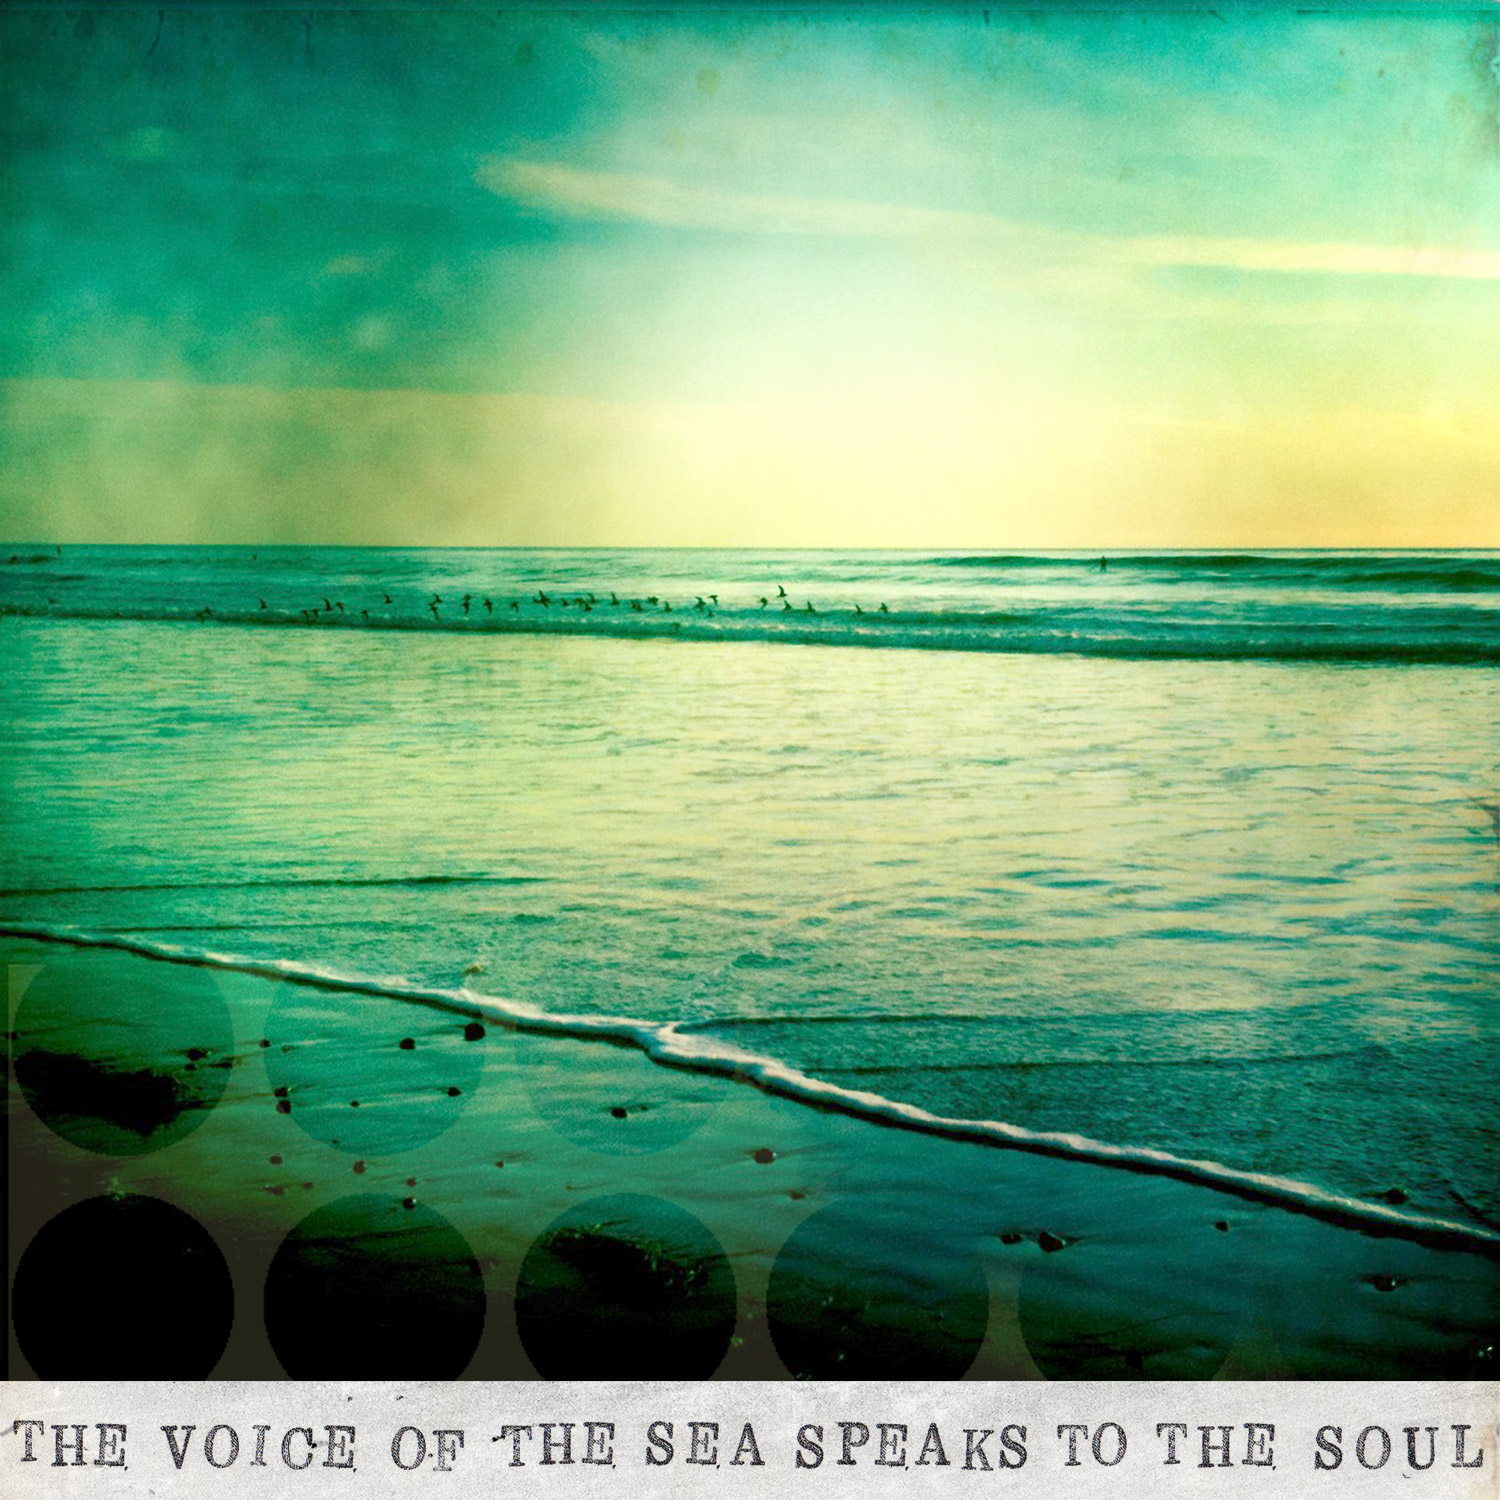 The Sea Speaks